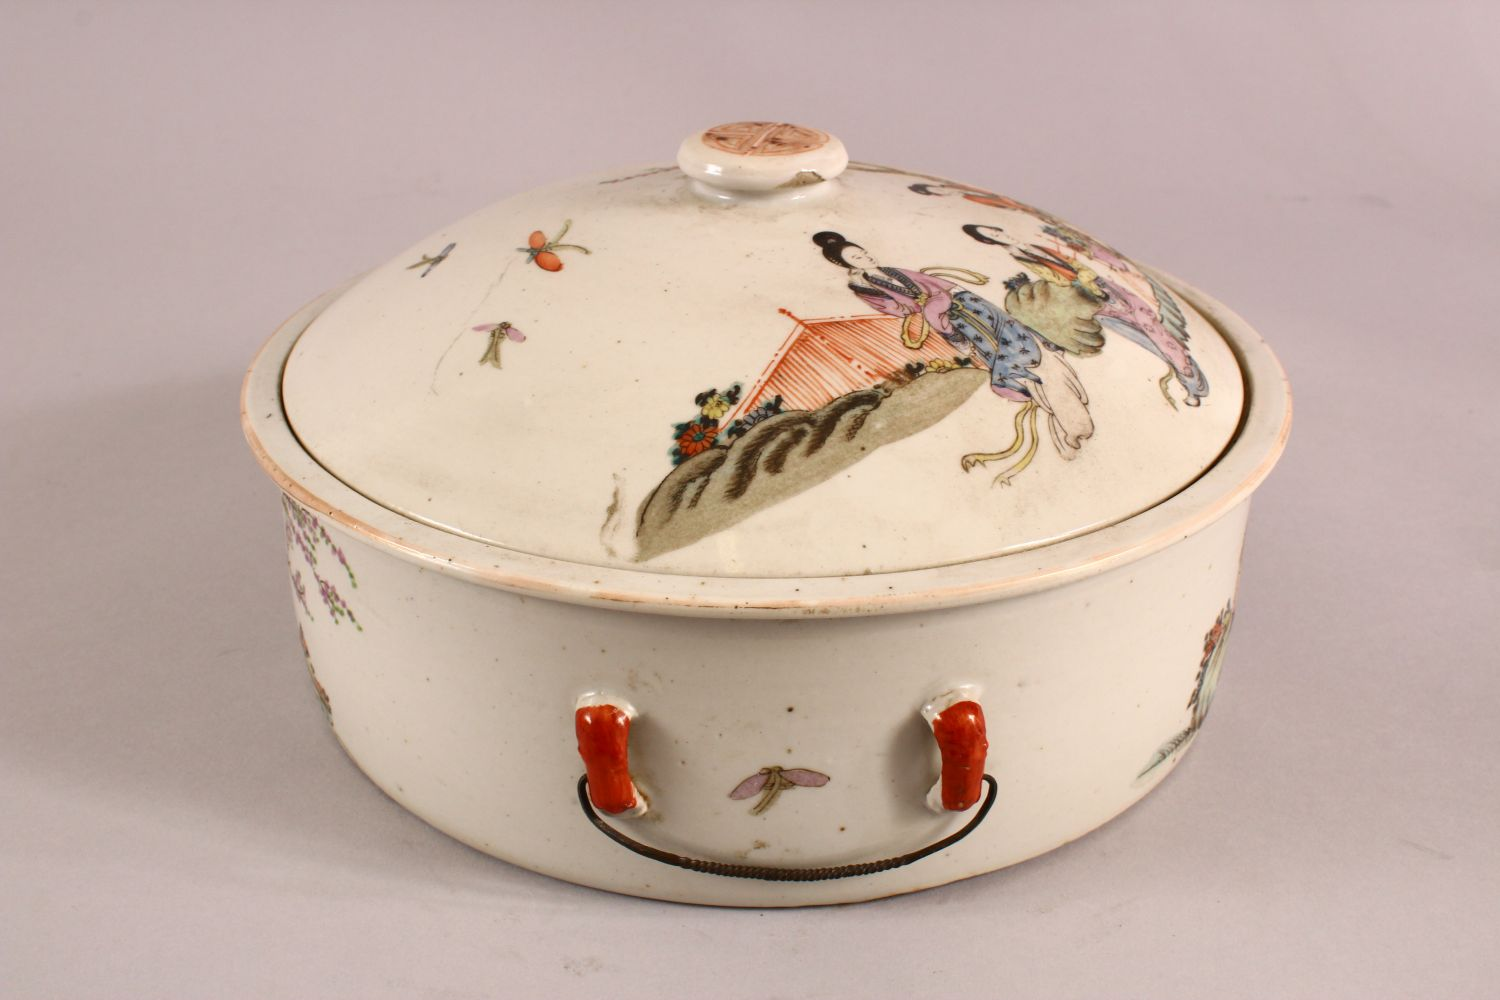 A 19TH CENTURY CHINESE FAMILLE ROSE PORCELAIN BOWL & COVER, with decoration of figures in - Image 2 of 6